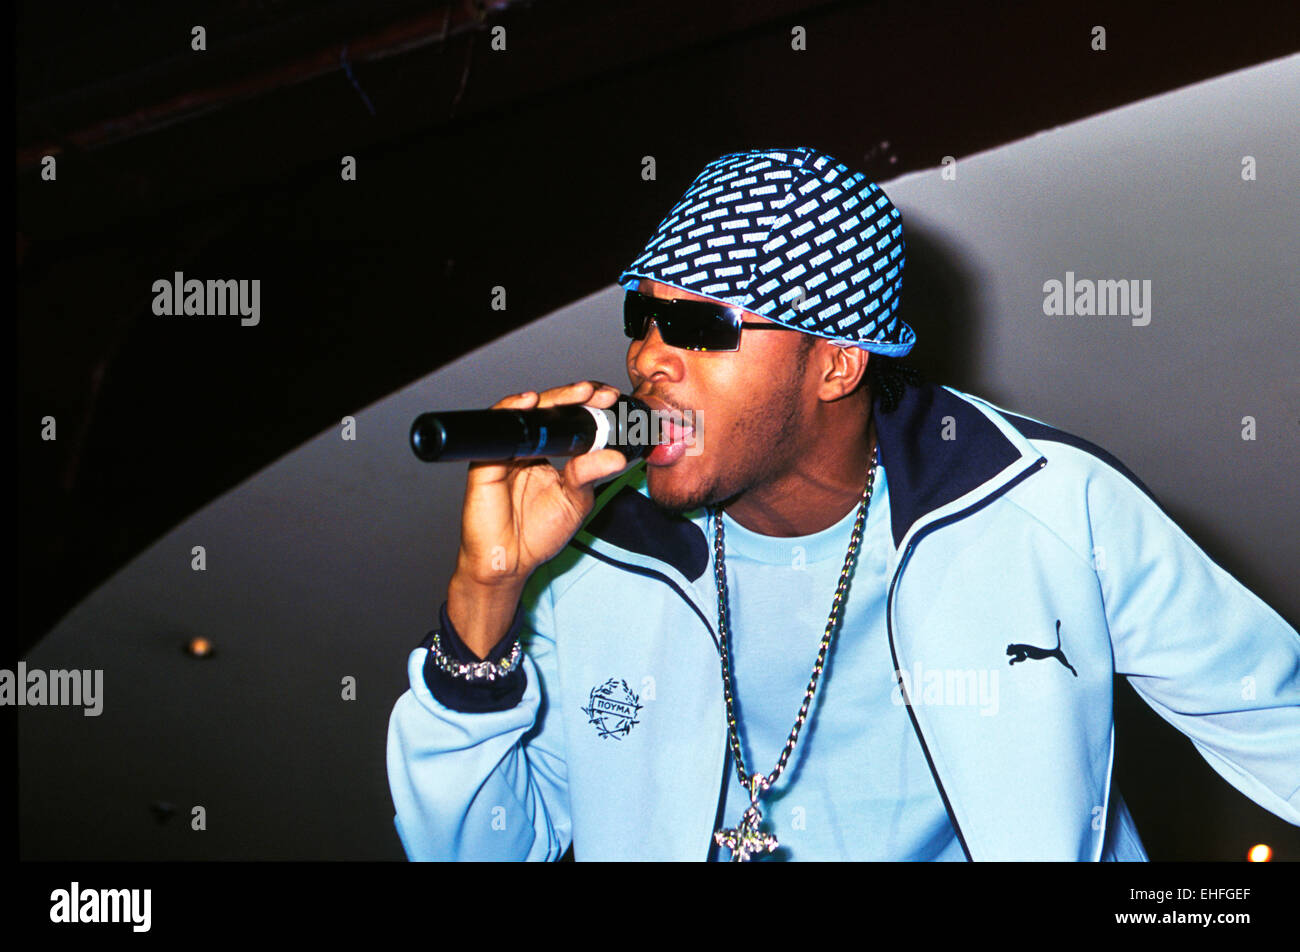 Assassin performing live at Miss Reggae Gold competition at the CC Club London. - Stock Image